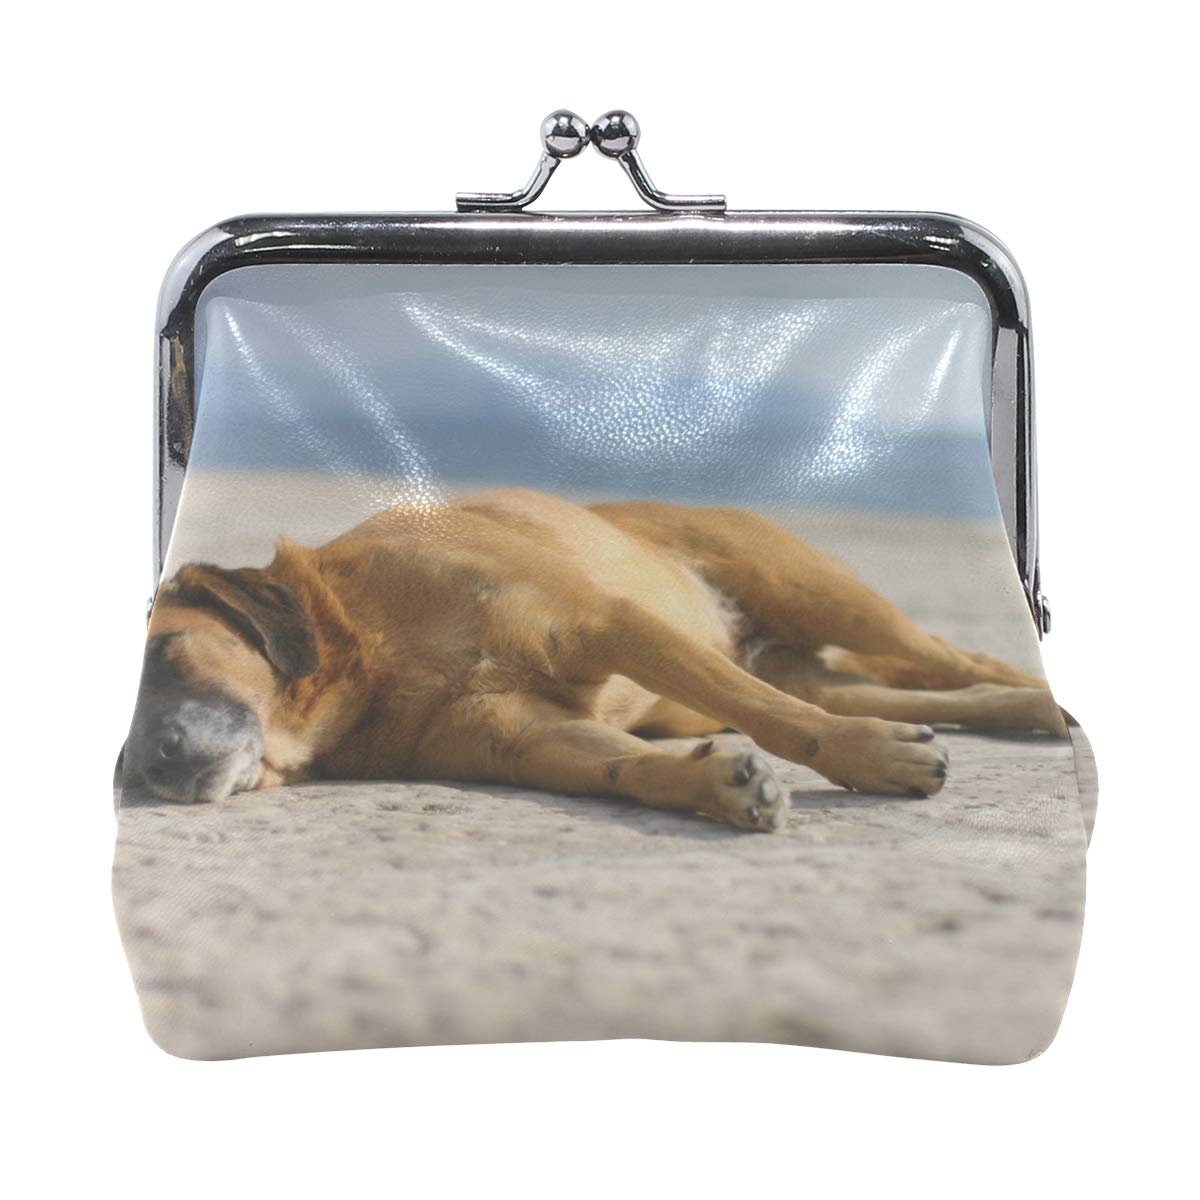 Rh Studio Coin Purse Clasp Closure Dogs Sleeping Sand Lie Print Wallet Exquisite Coin Pouch Girls Women Clutch Handbag Exquisite Gift